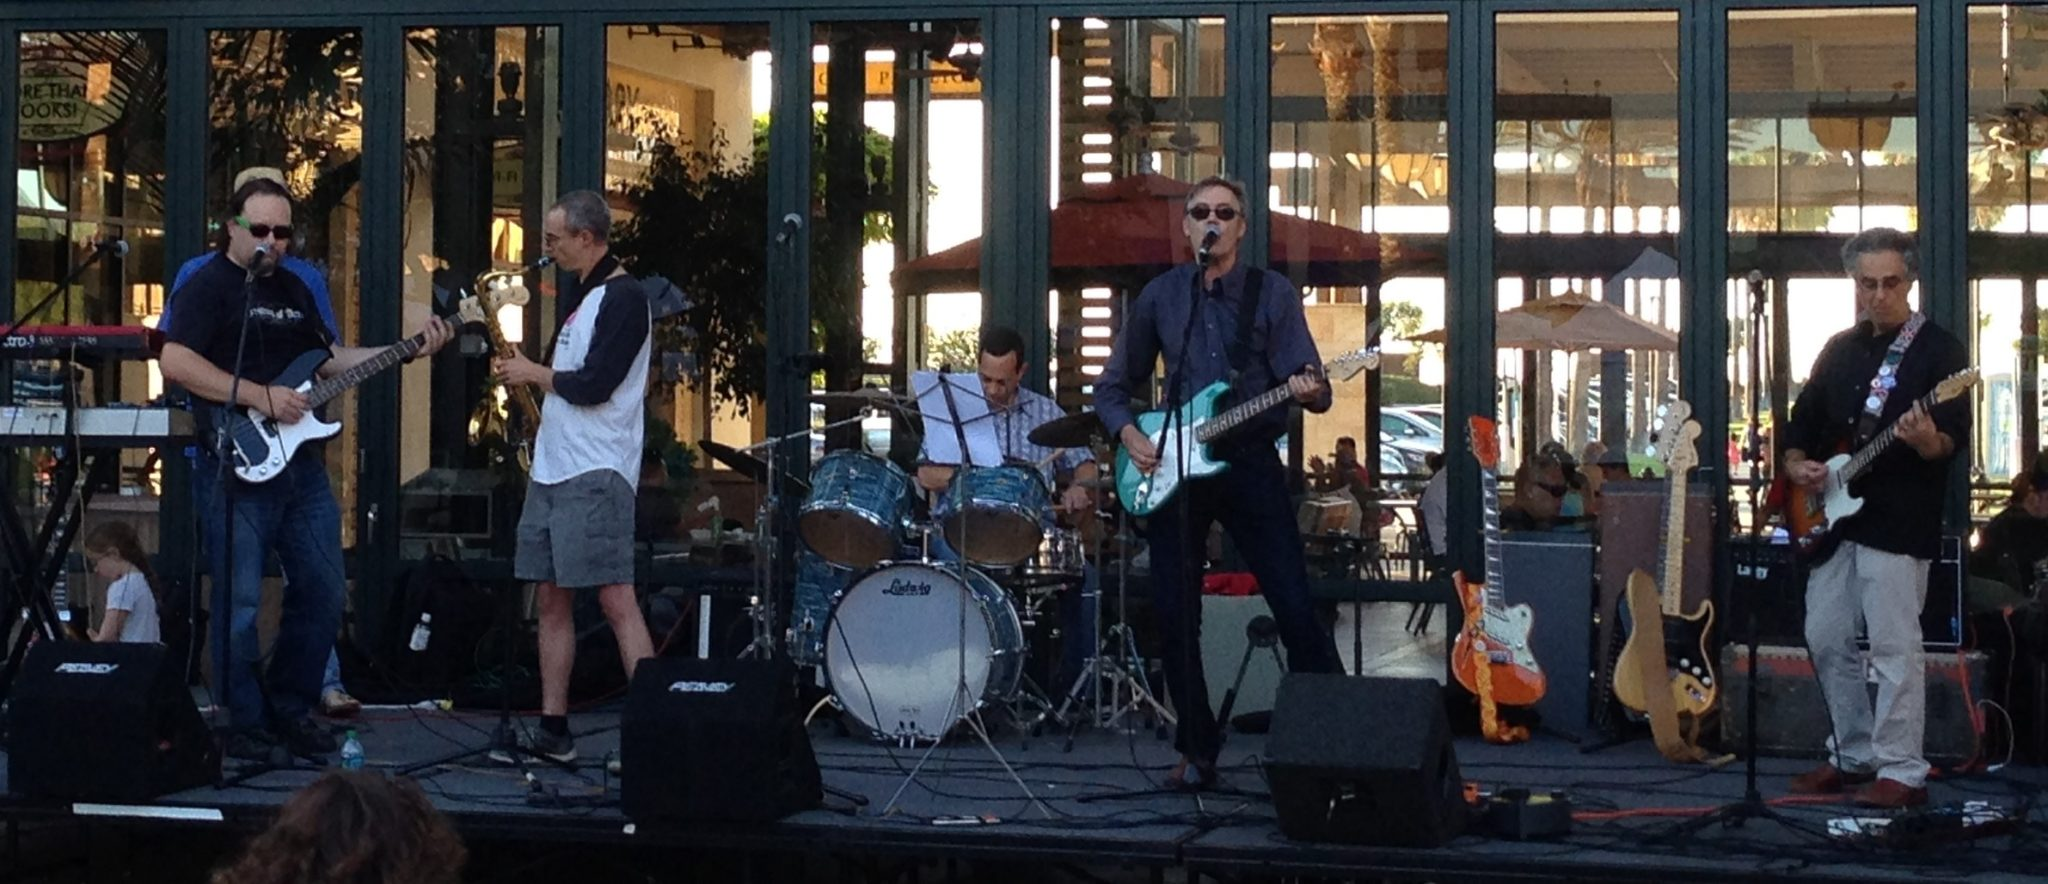 The Innocent Bystanders at Otay Ranch Town Center